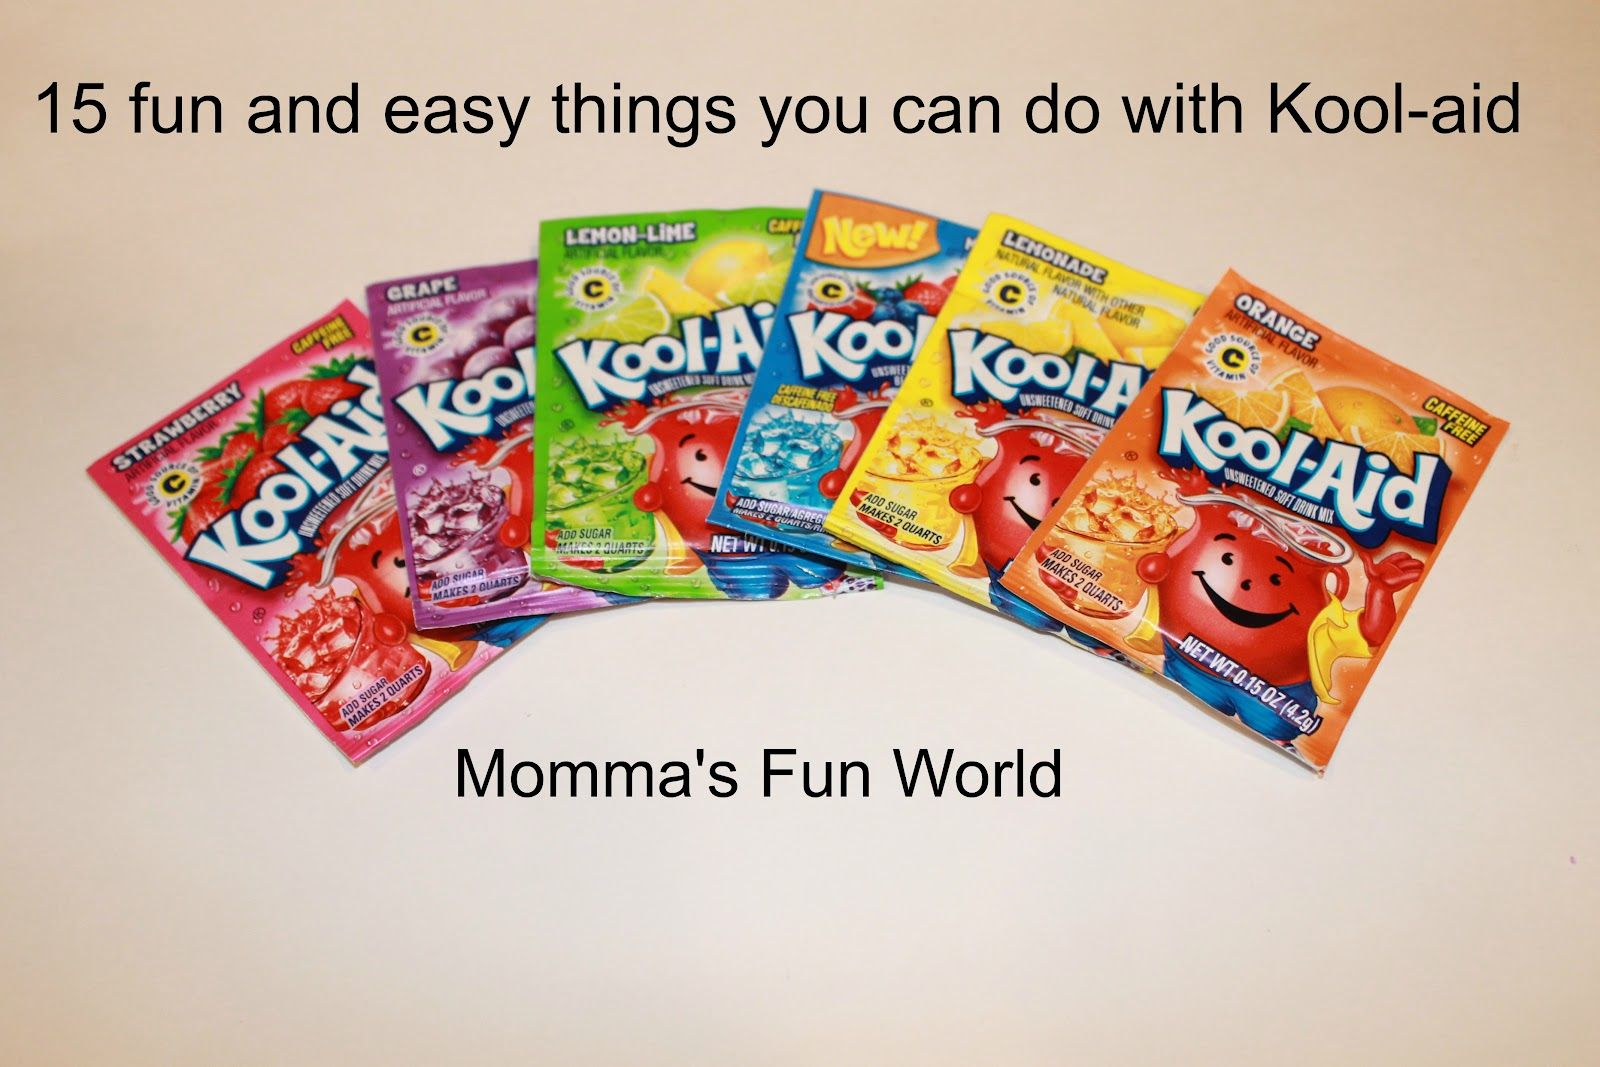 Momma's Fun World: 15 things you can do with Kool-Aid